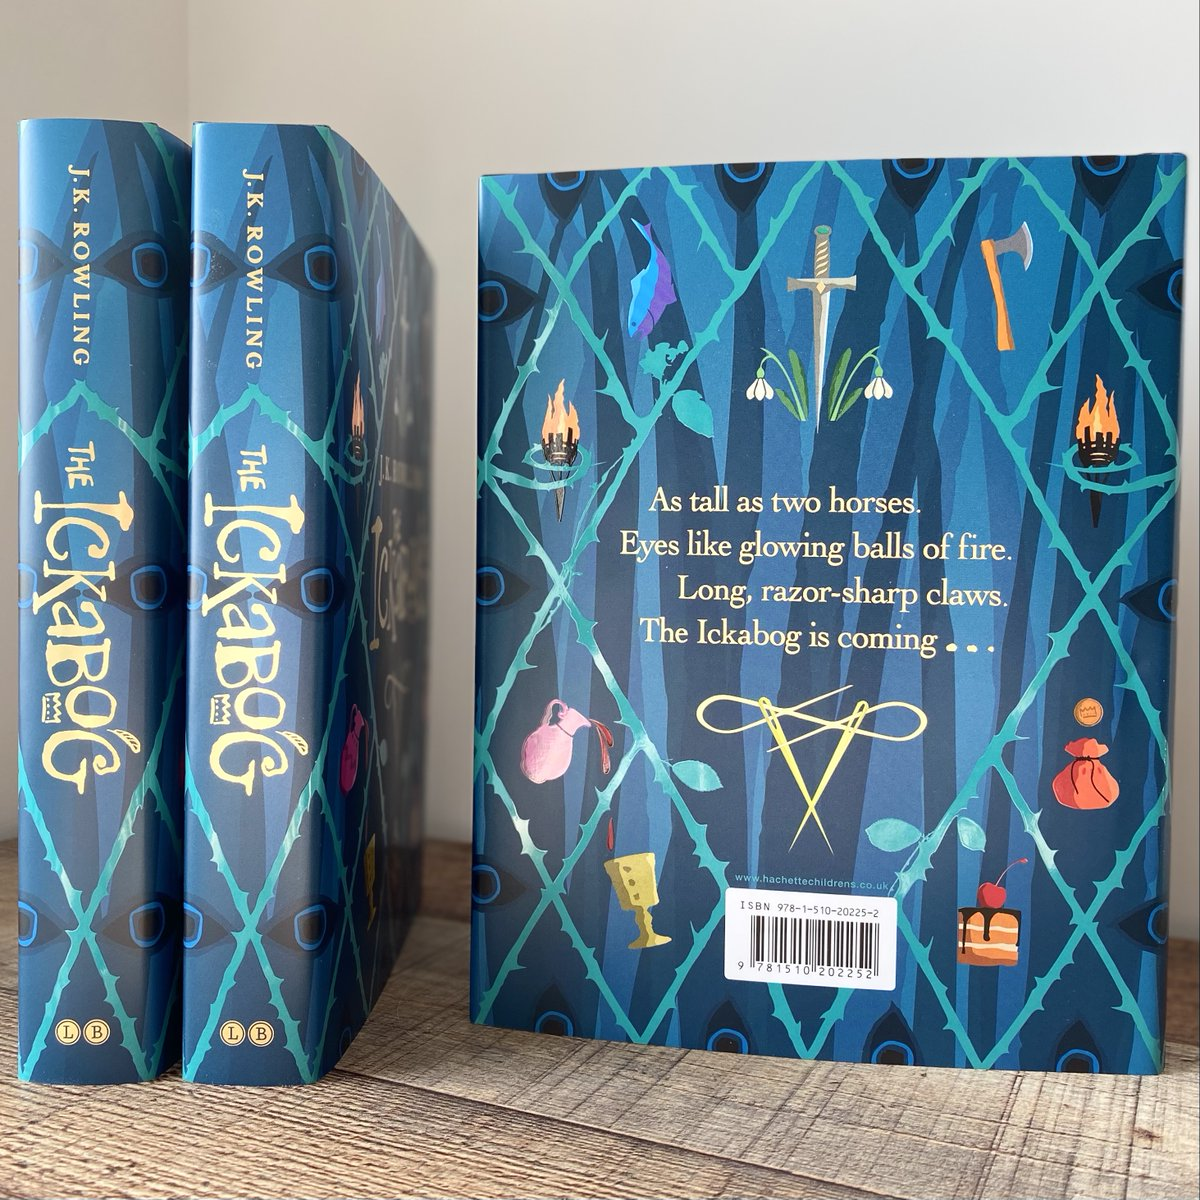 Discover a brilliantly original fairy tale about the power of hope and friendship to triumph against all odds, from one of the world's best storytellers.   #TheIckabog by J.K. Rowling is out now: